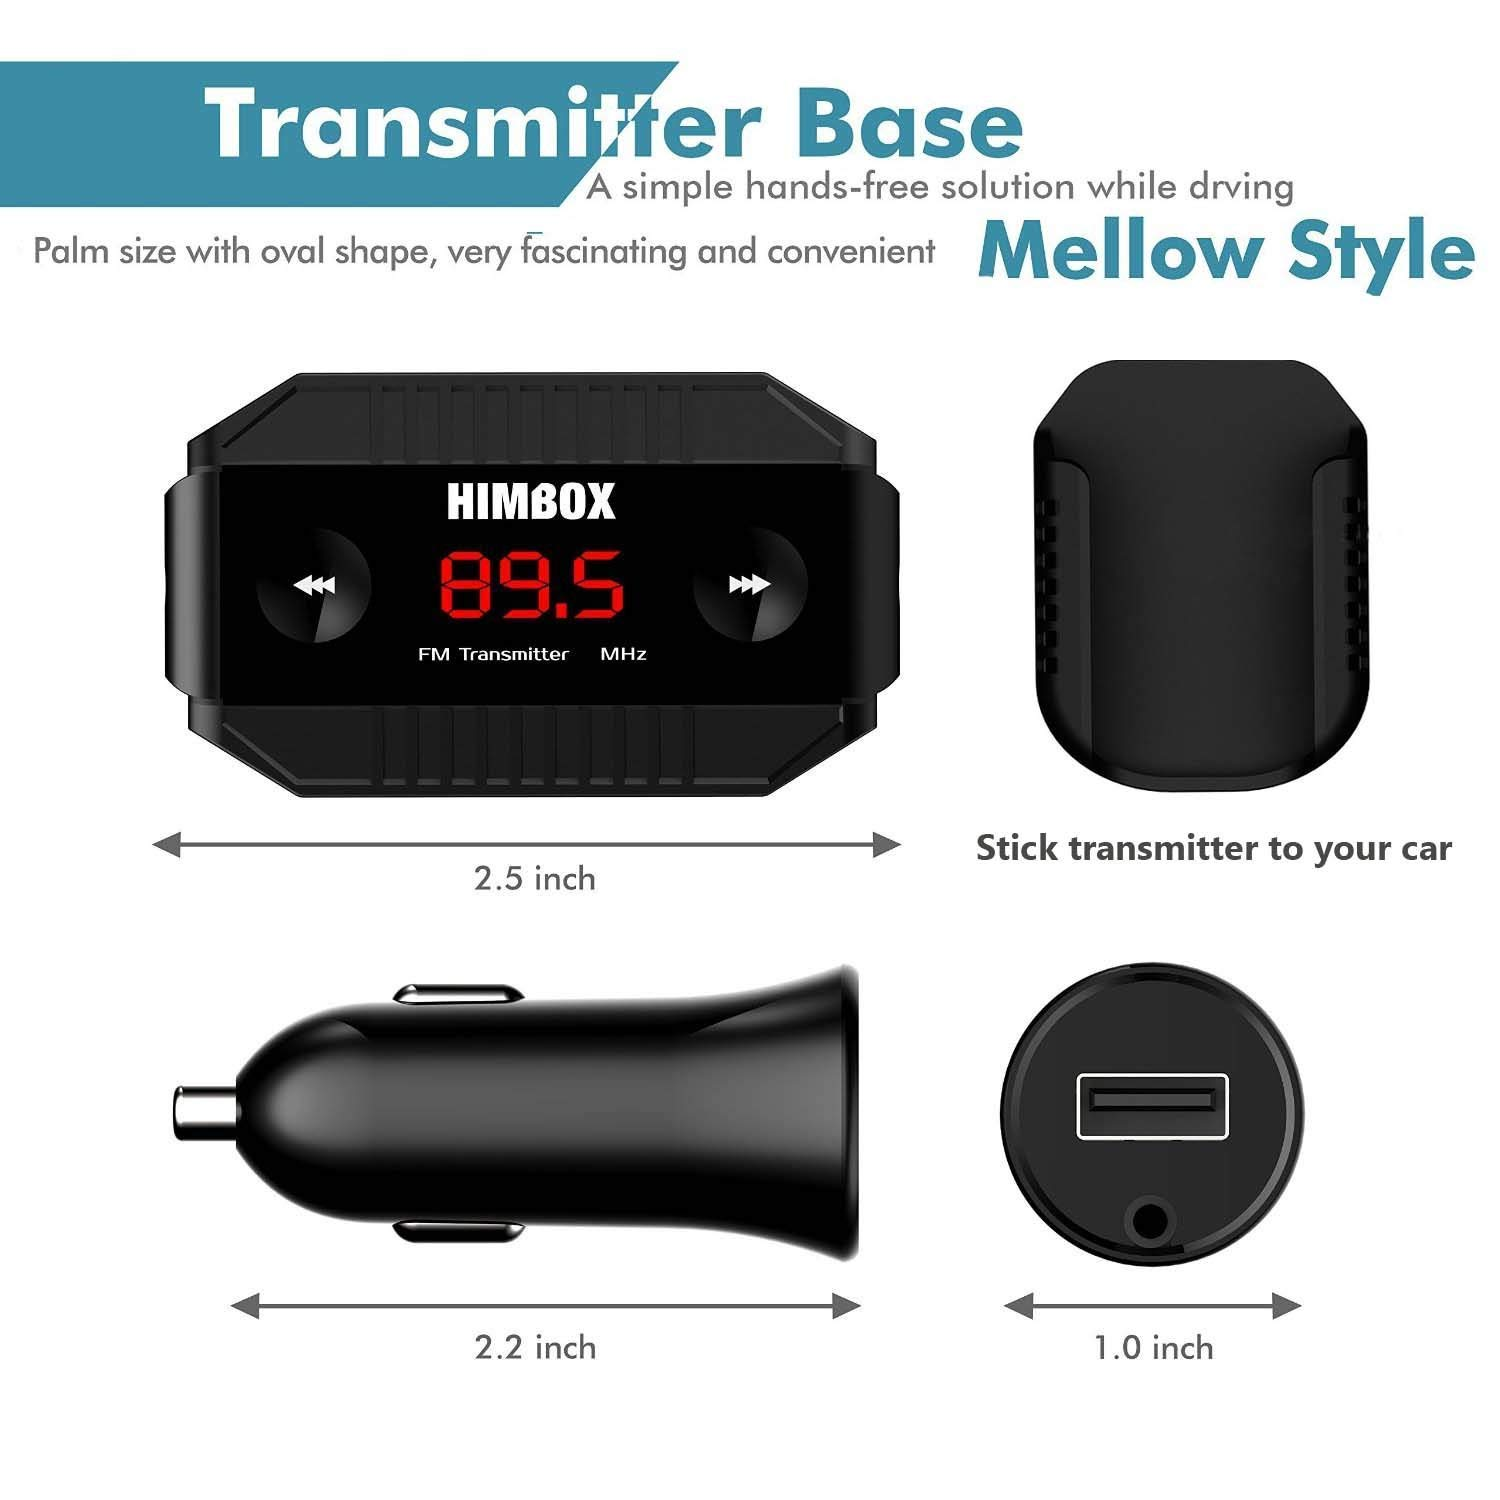 iClever FM Transmitter Radio Car Kits with USB Car Charger 3.5mm Aux Cable Compatible with iPhone Android Smartphone and More iPod